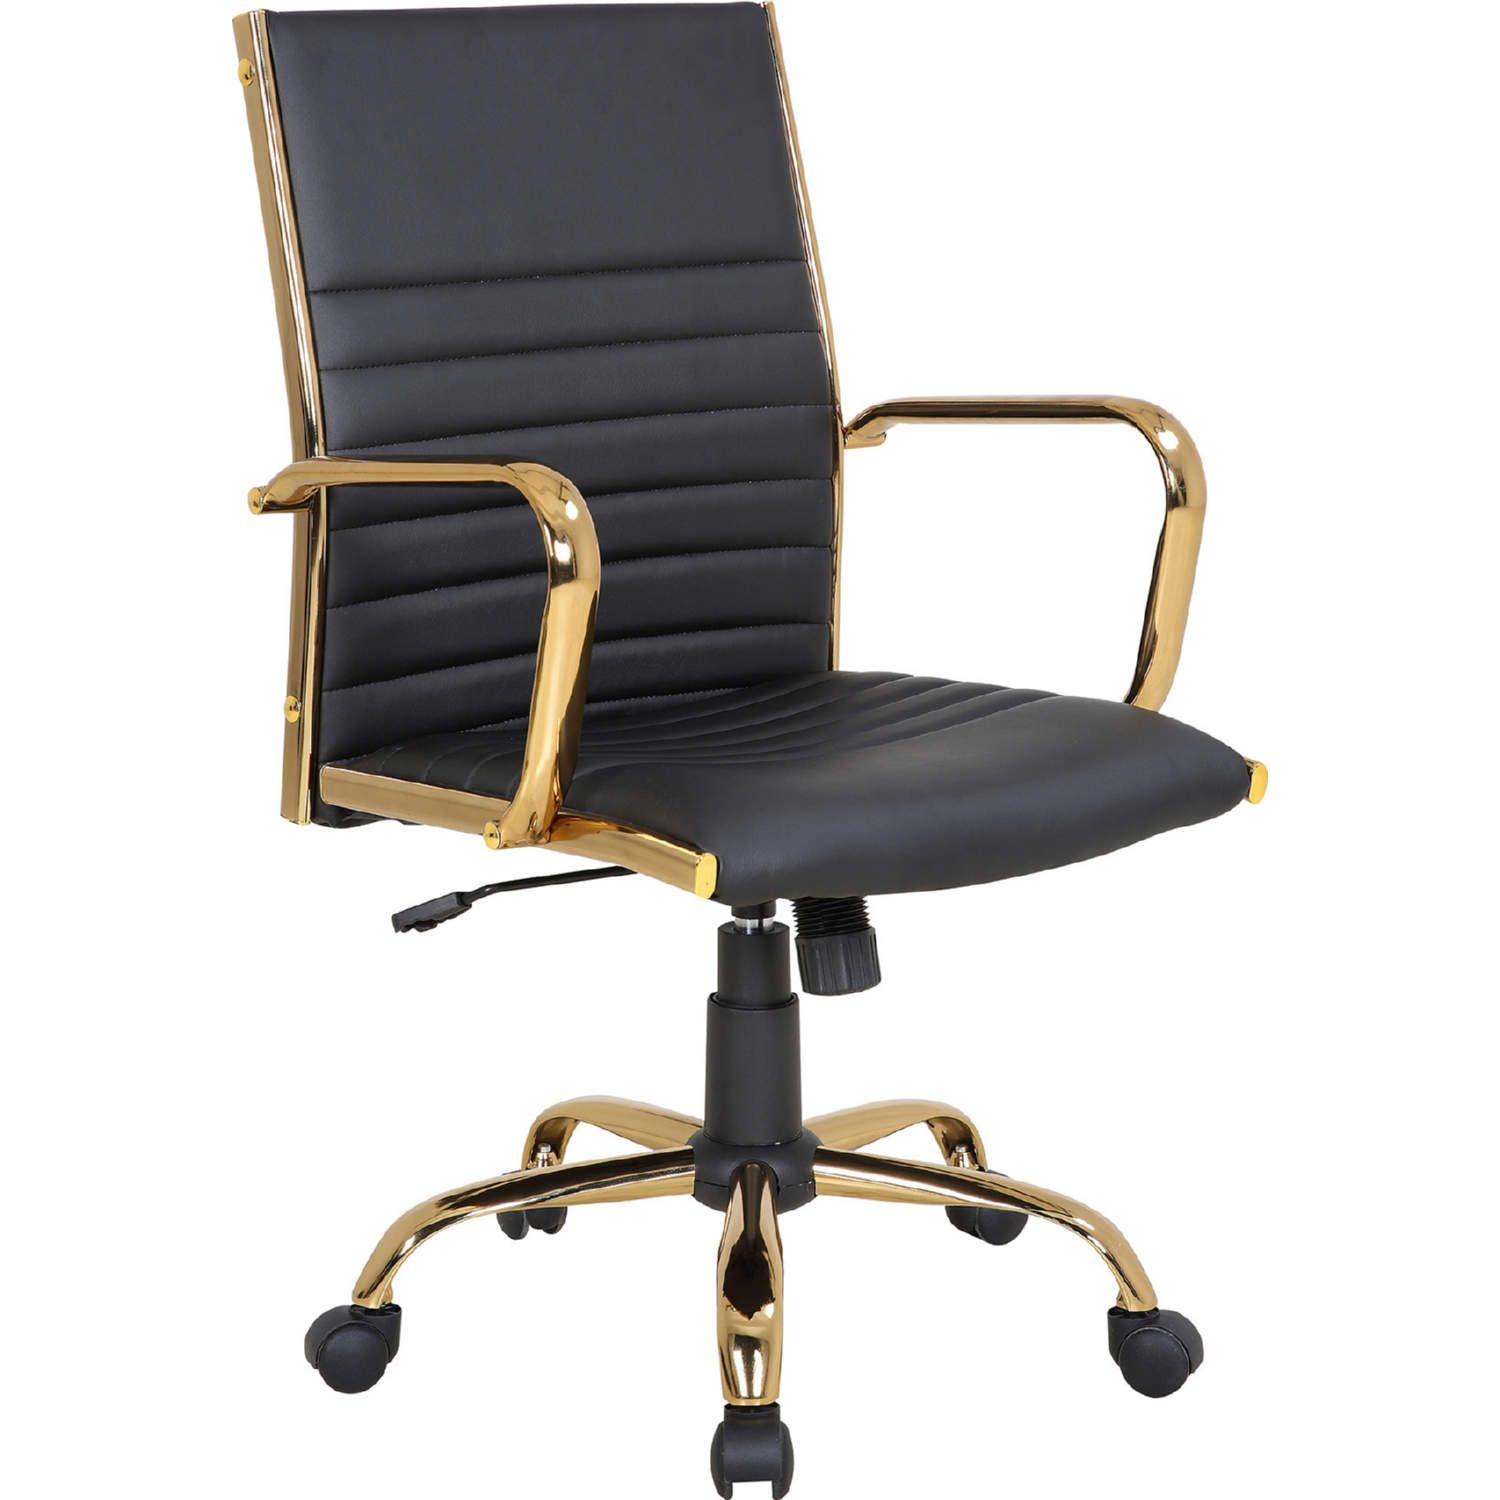 Lumisource Oc Mstr Au Bk Master Adjustable Swivel Office Chair Gold Metal Black Leatherette In 2020 Contemporary Office Chairs Black Office Chair Adjustable Office Chair